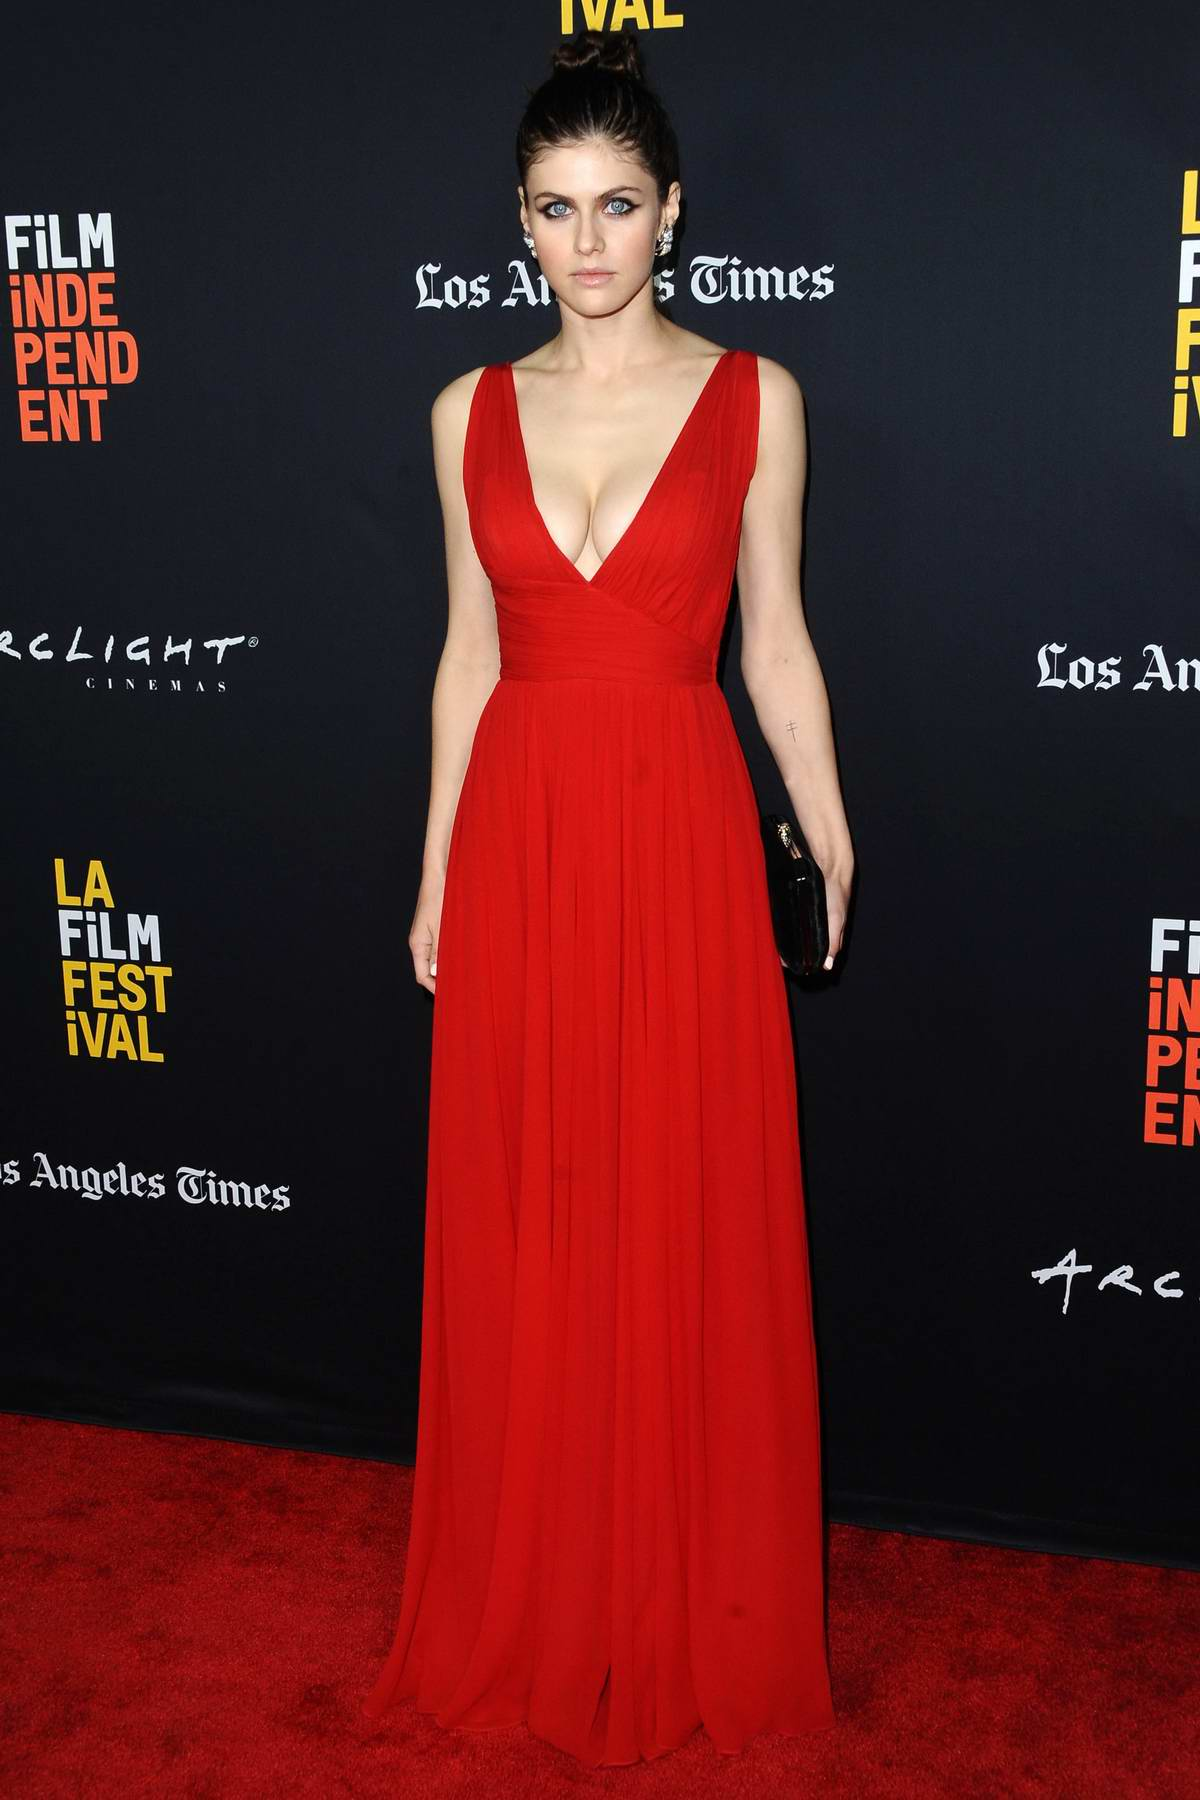 Alexandra Daddario attends Los Angeles Film Festival closing night premiere of 'Nomis' at the Arclight Theater in Los Angeles